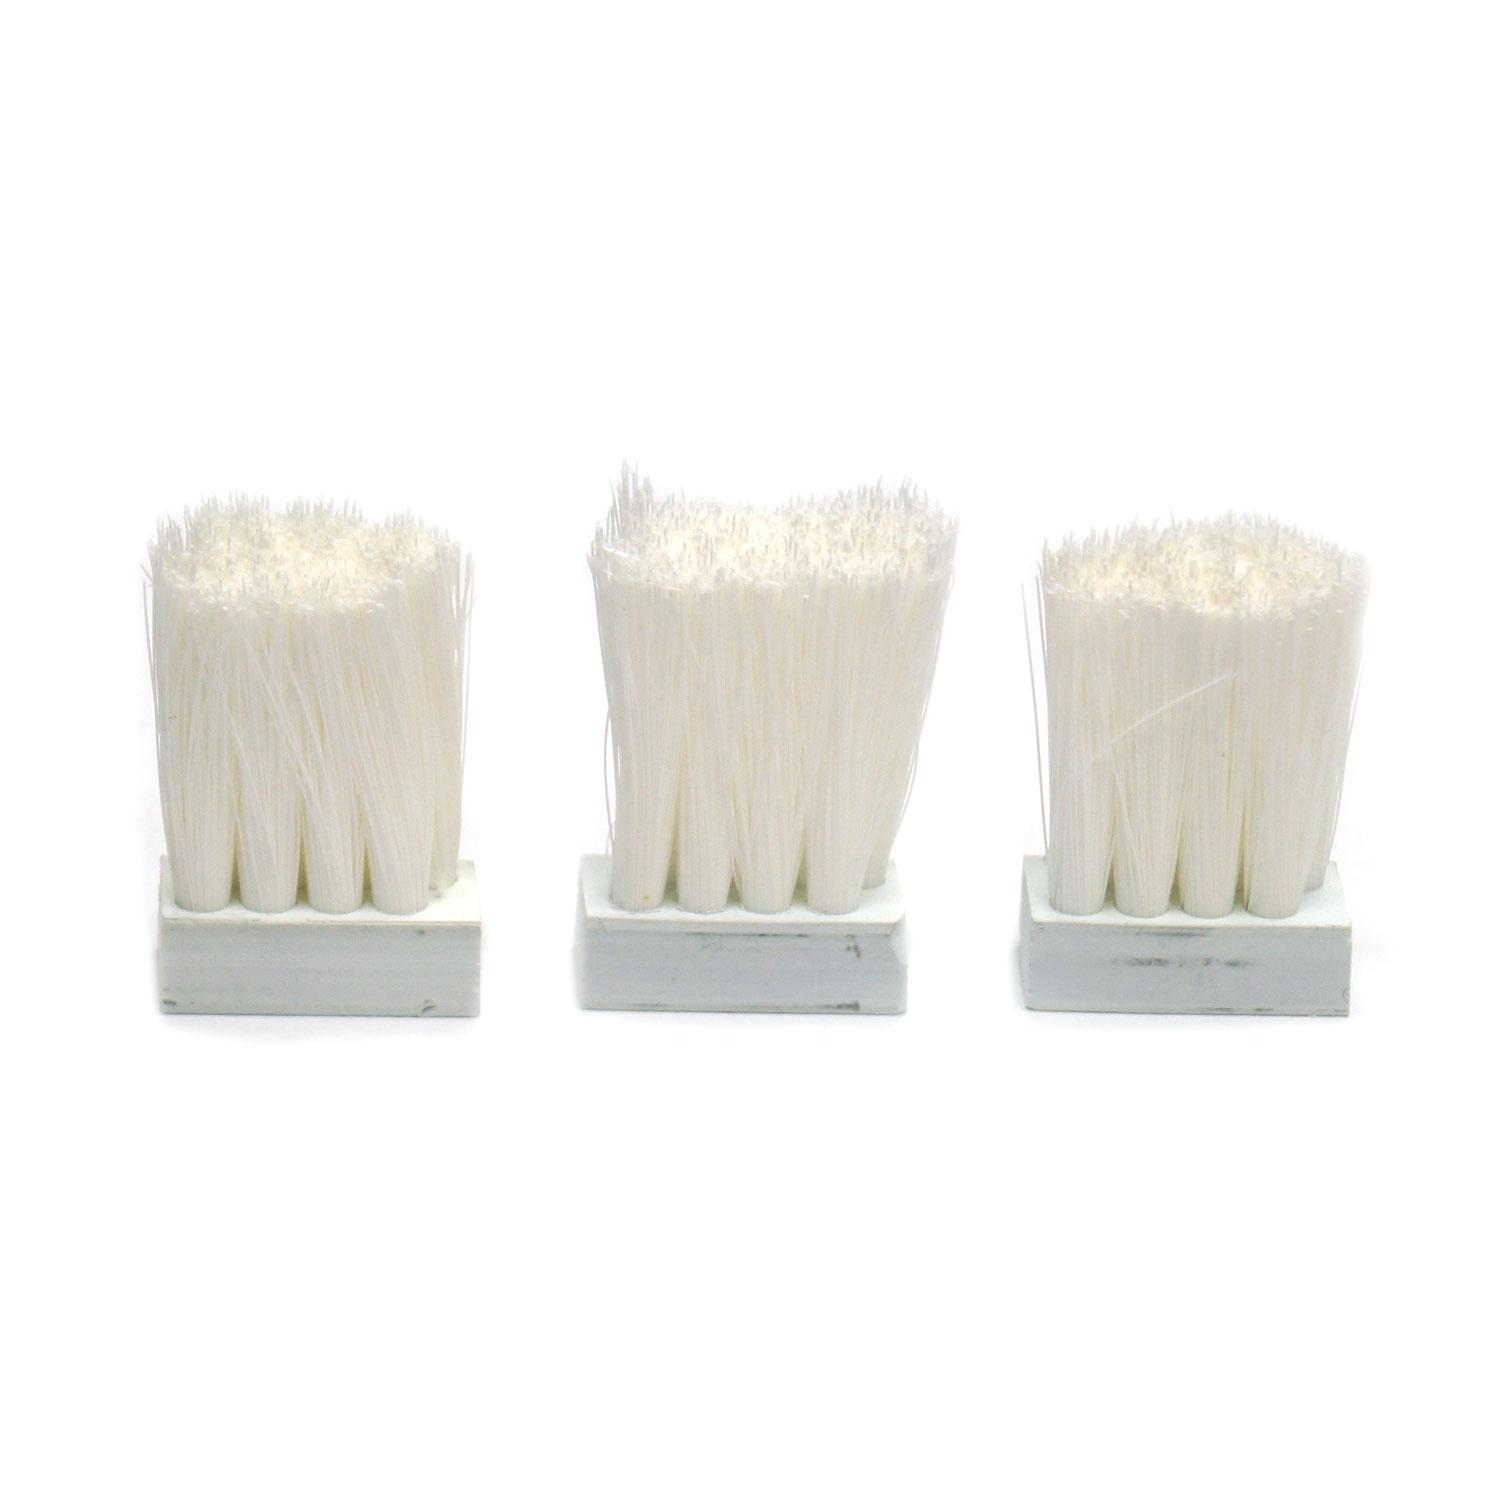 Aqua Flow System Replacement Brushes - 3 Pack